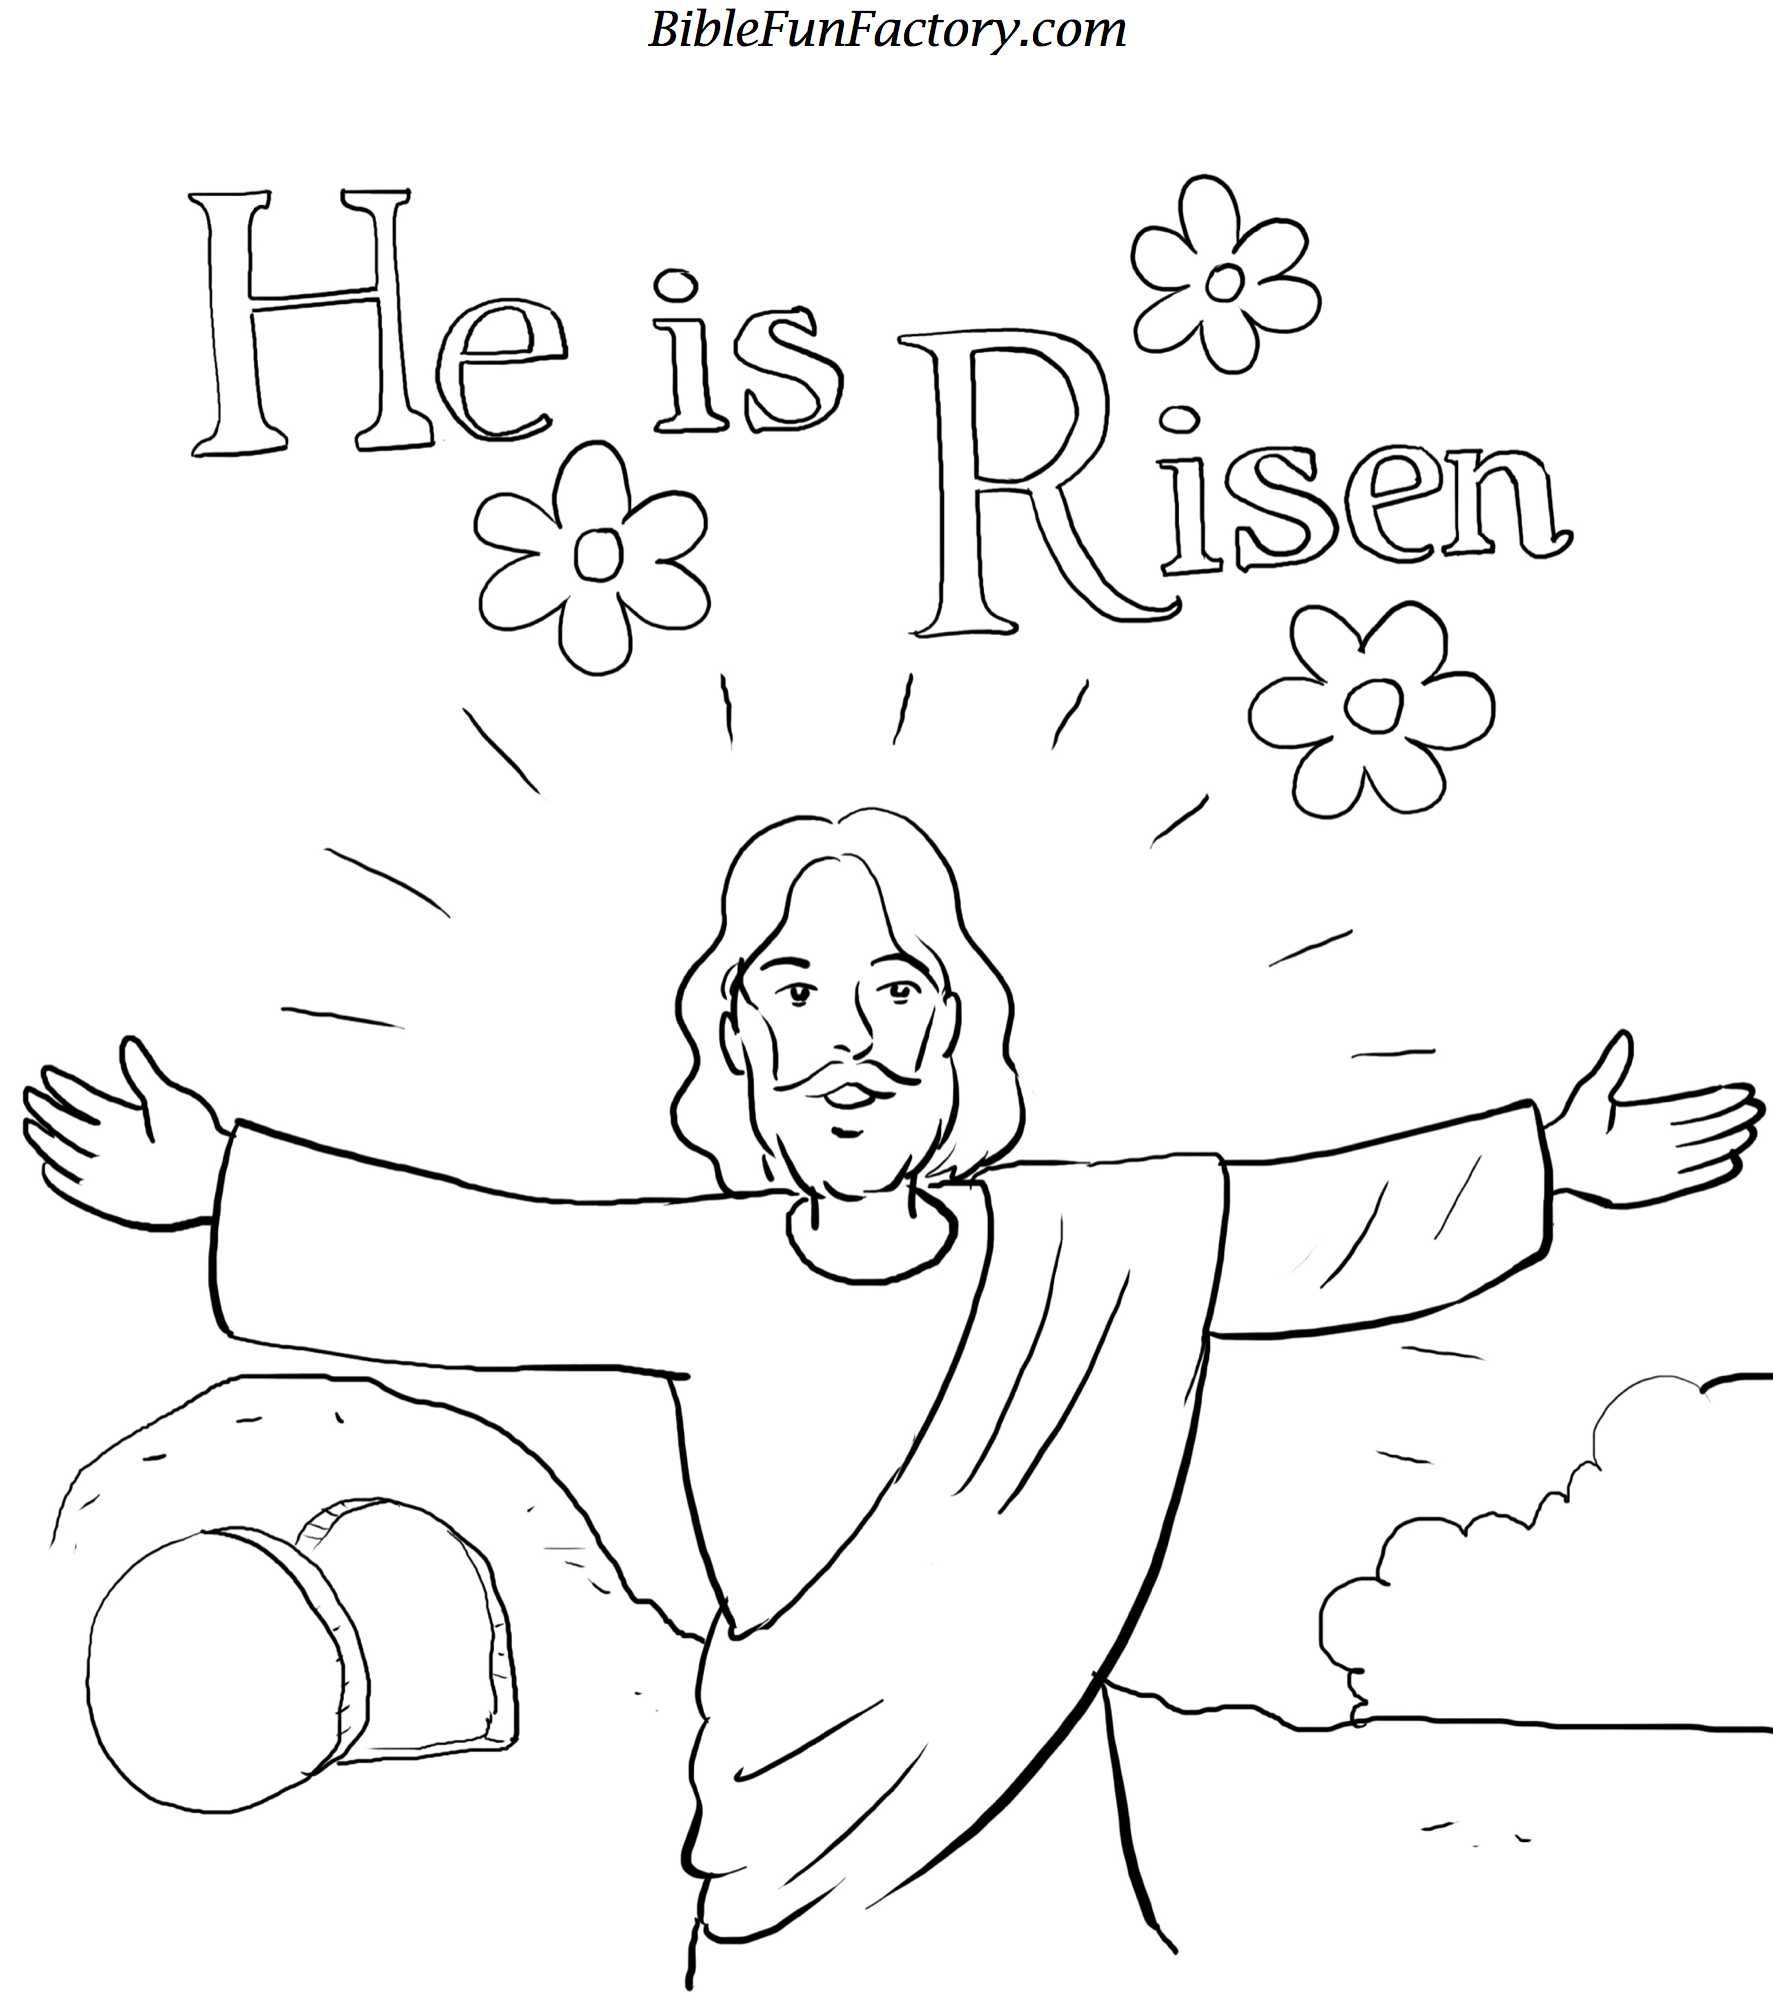 Printable coloring pages religious items - Resurrection Coloring Pages Free Easter Coloring Sheet